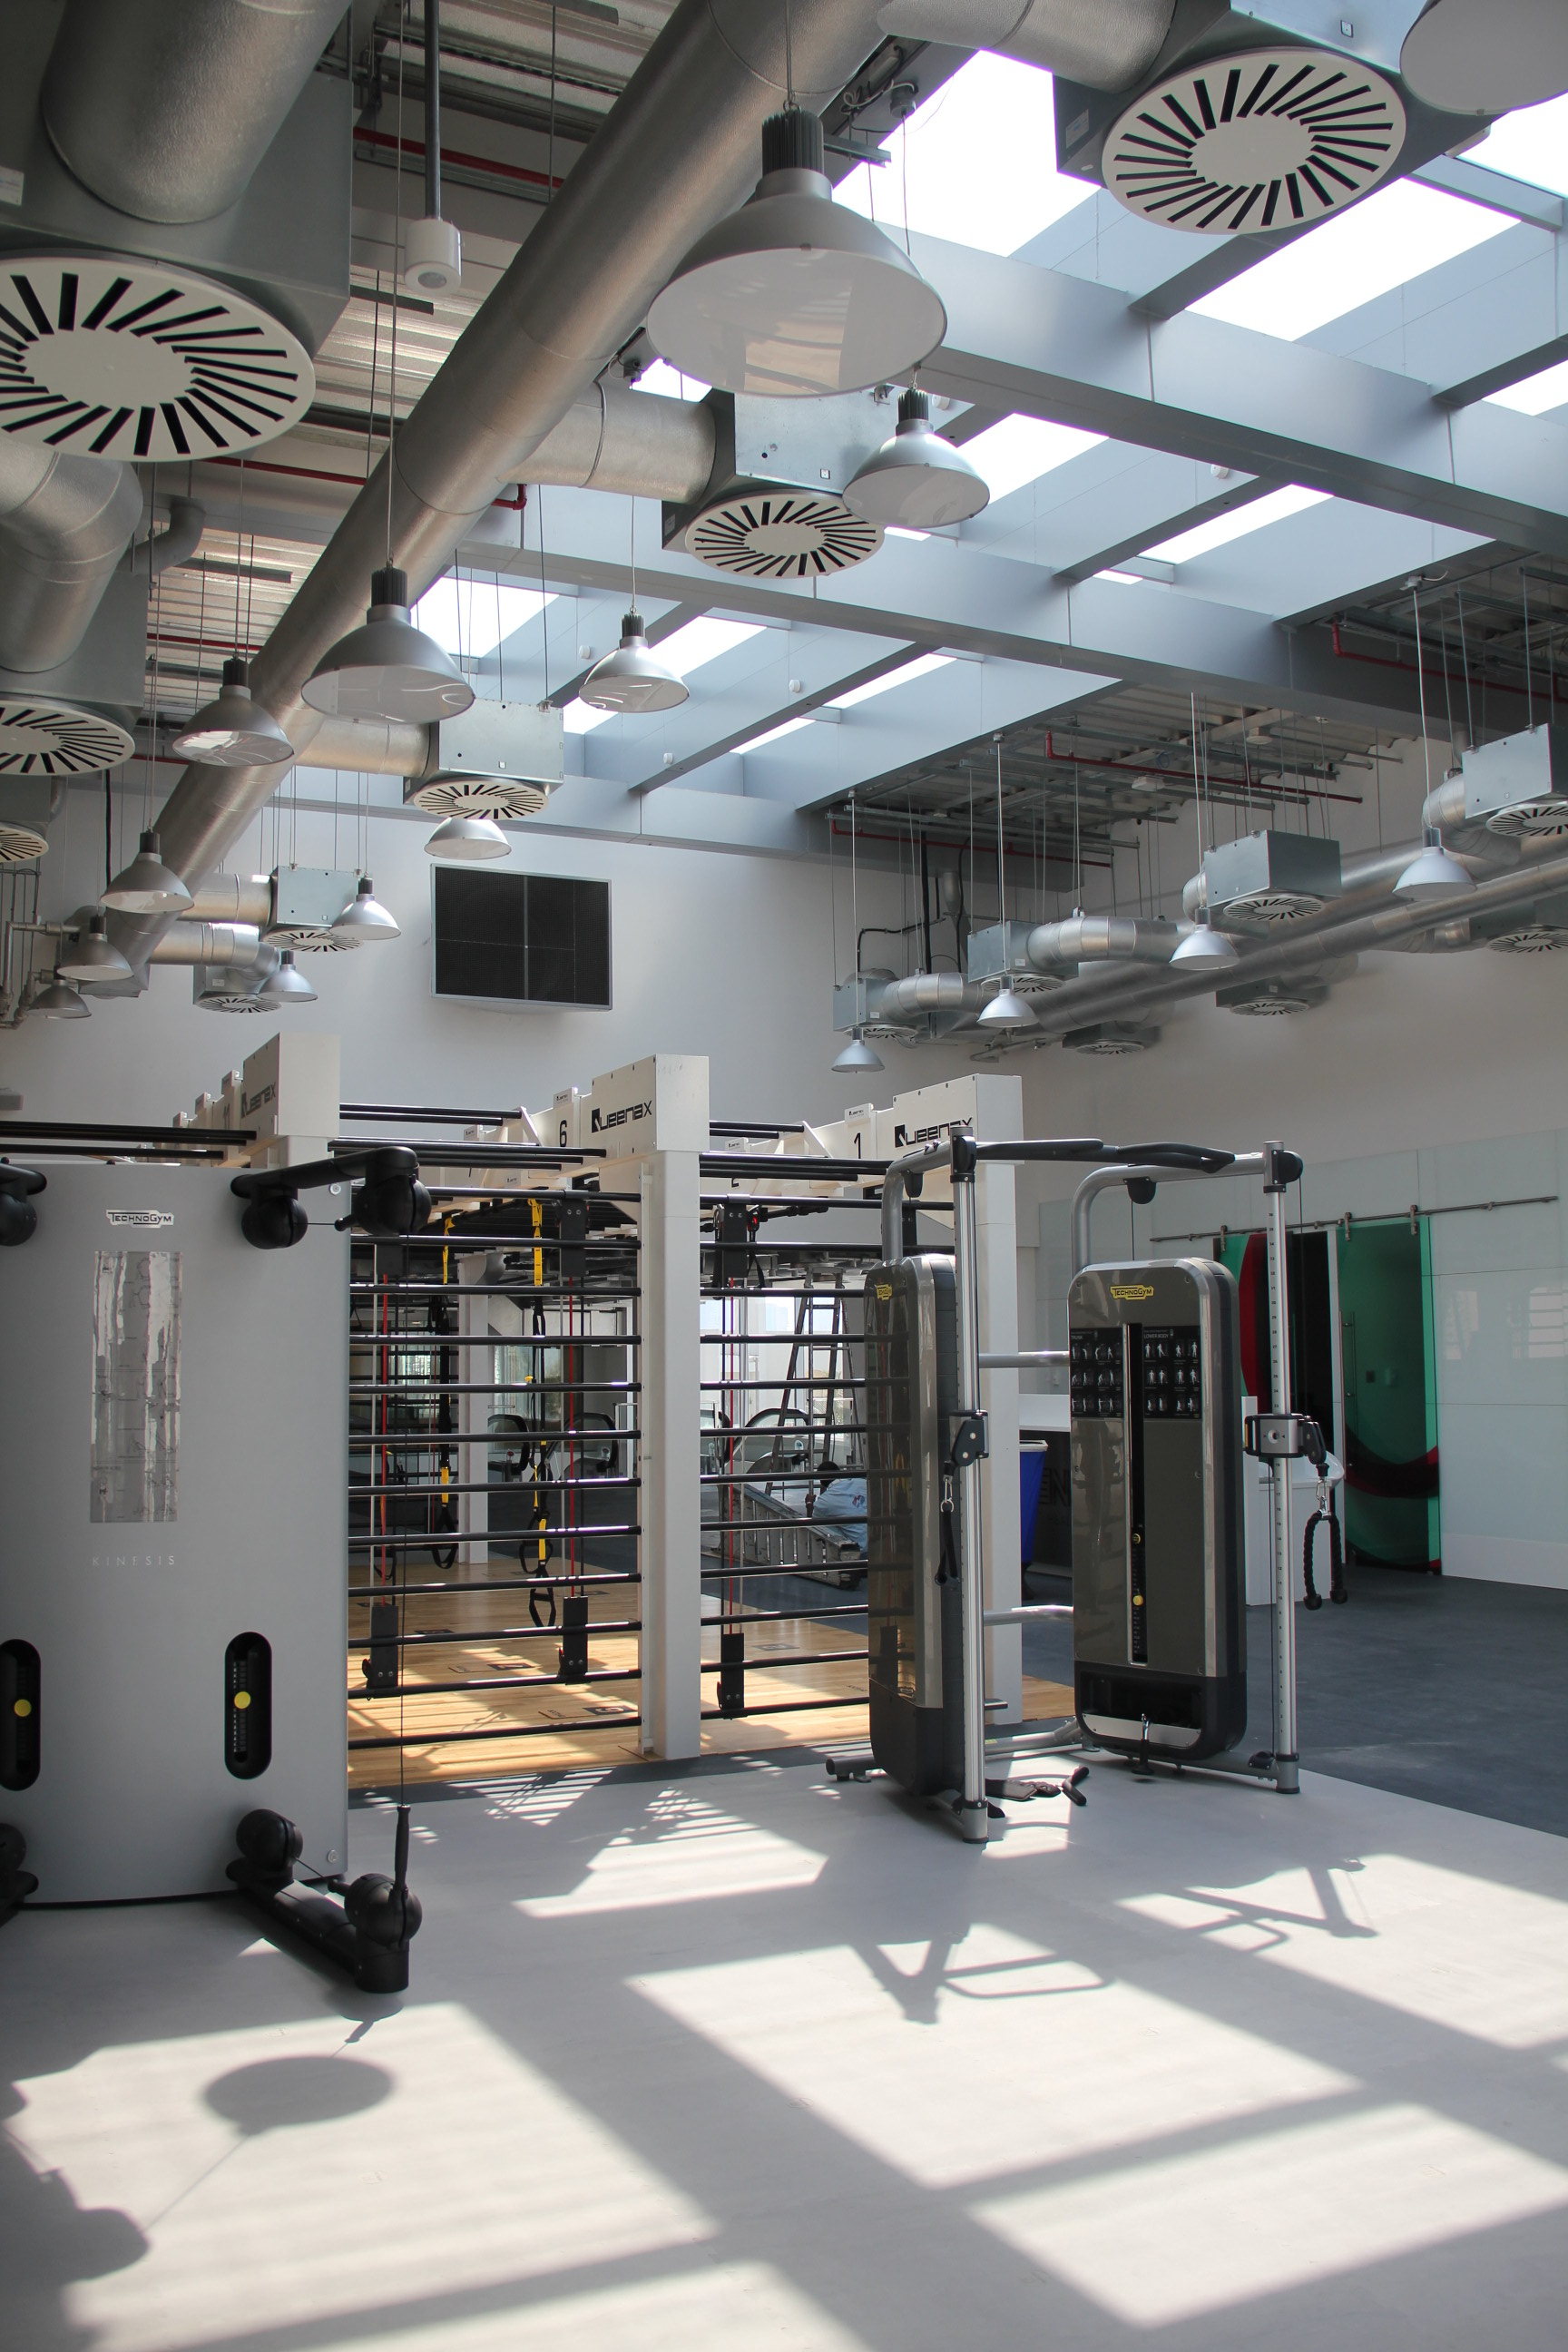 Engine Health And Fitness, Jumeirah 1st, Dubai, United Arab Emirates